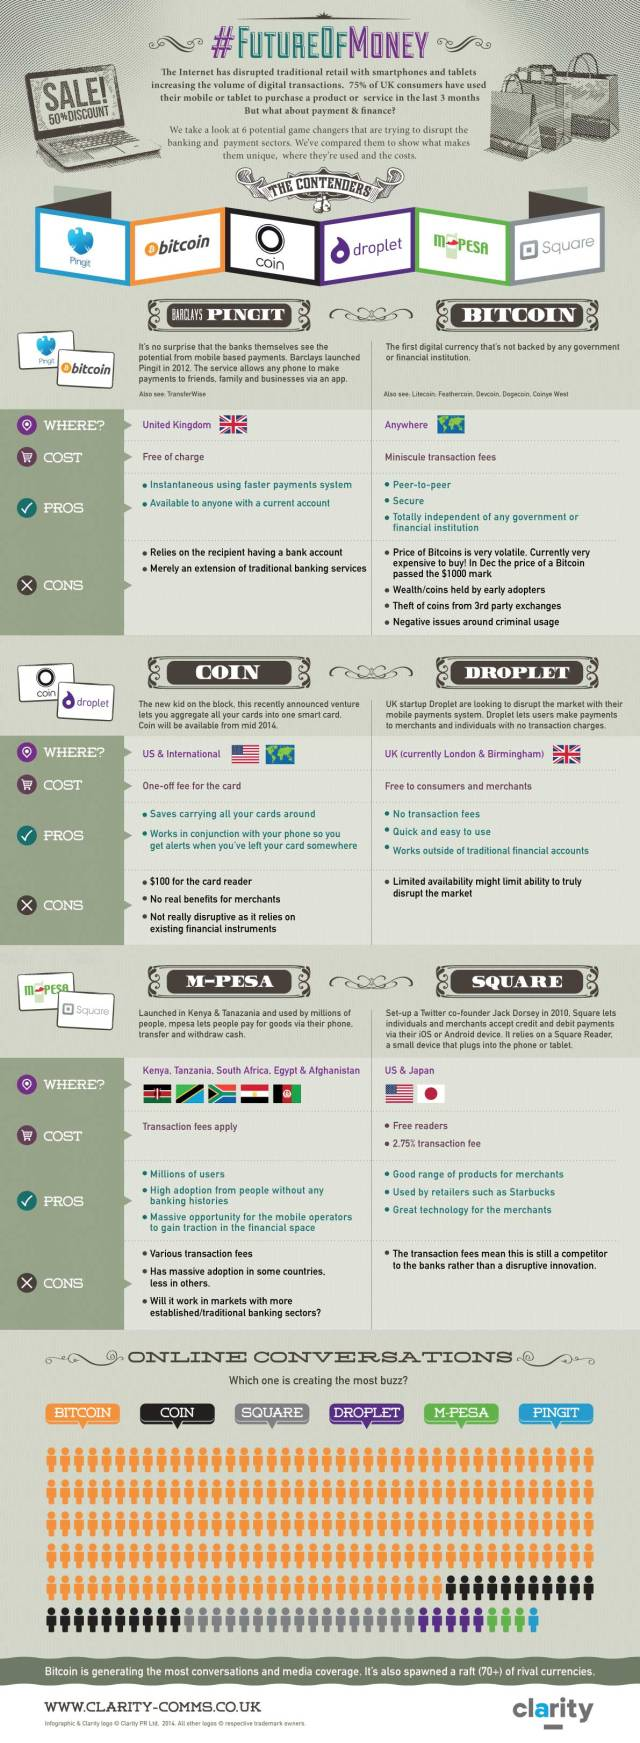 Clarity Comms #FutureOfMoney Infographic